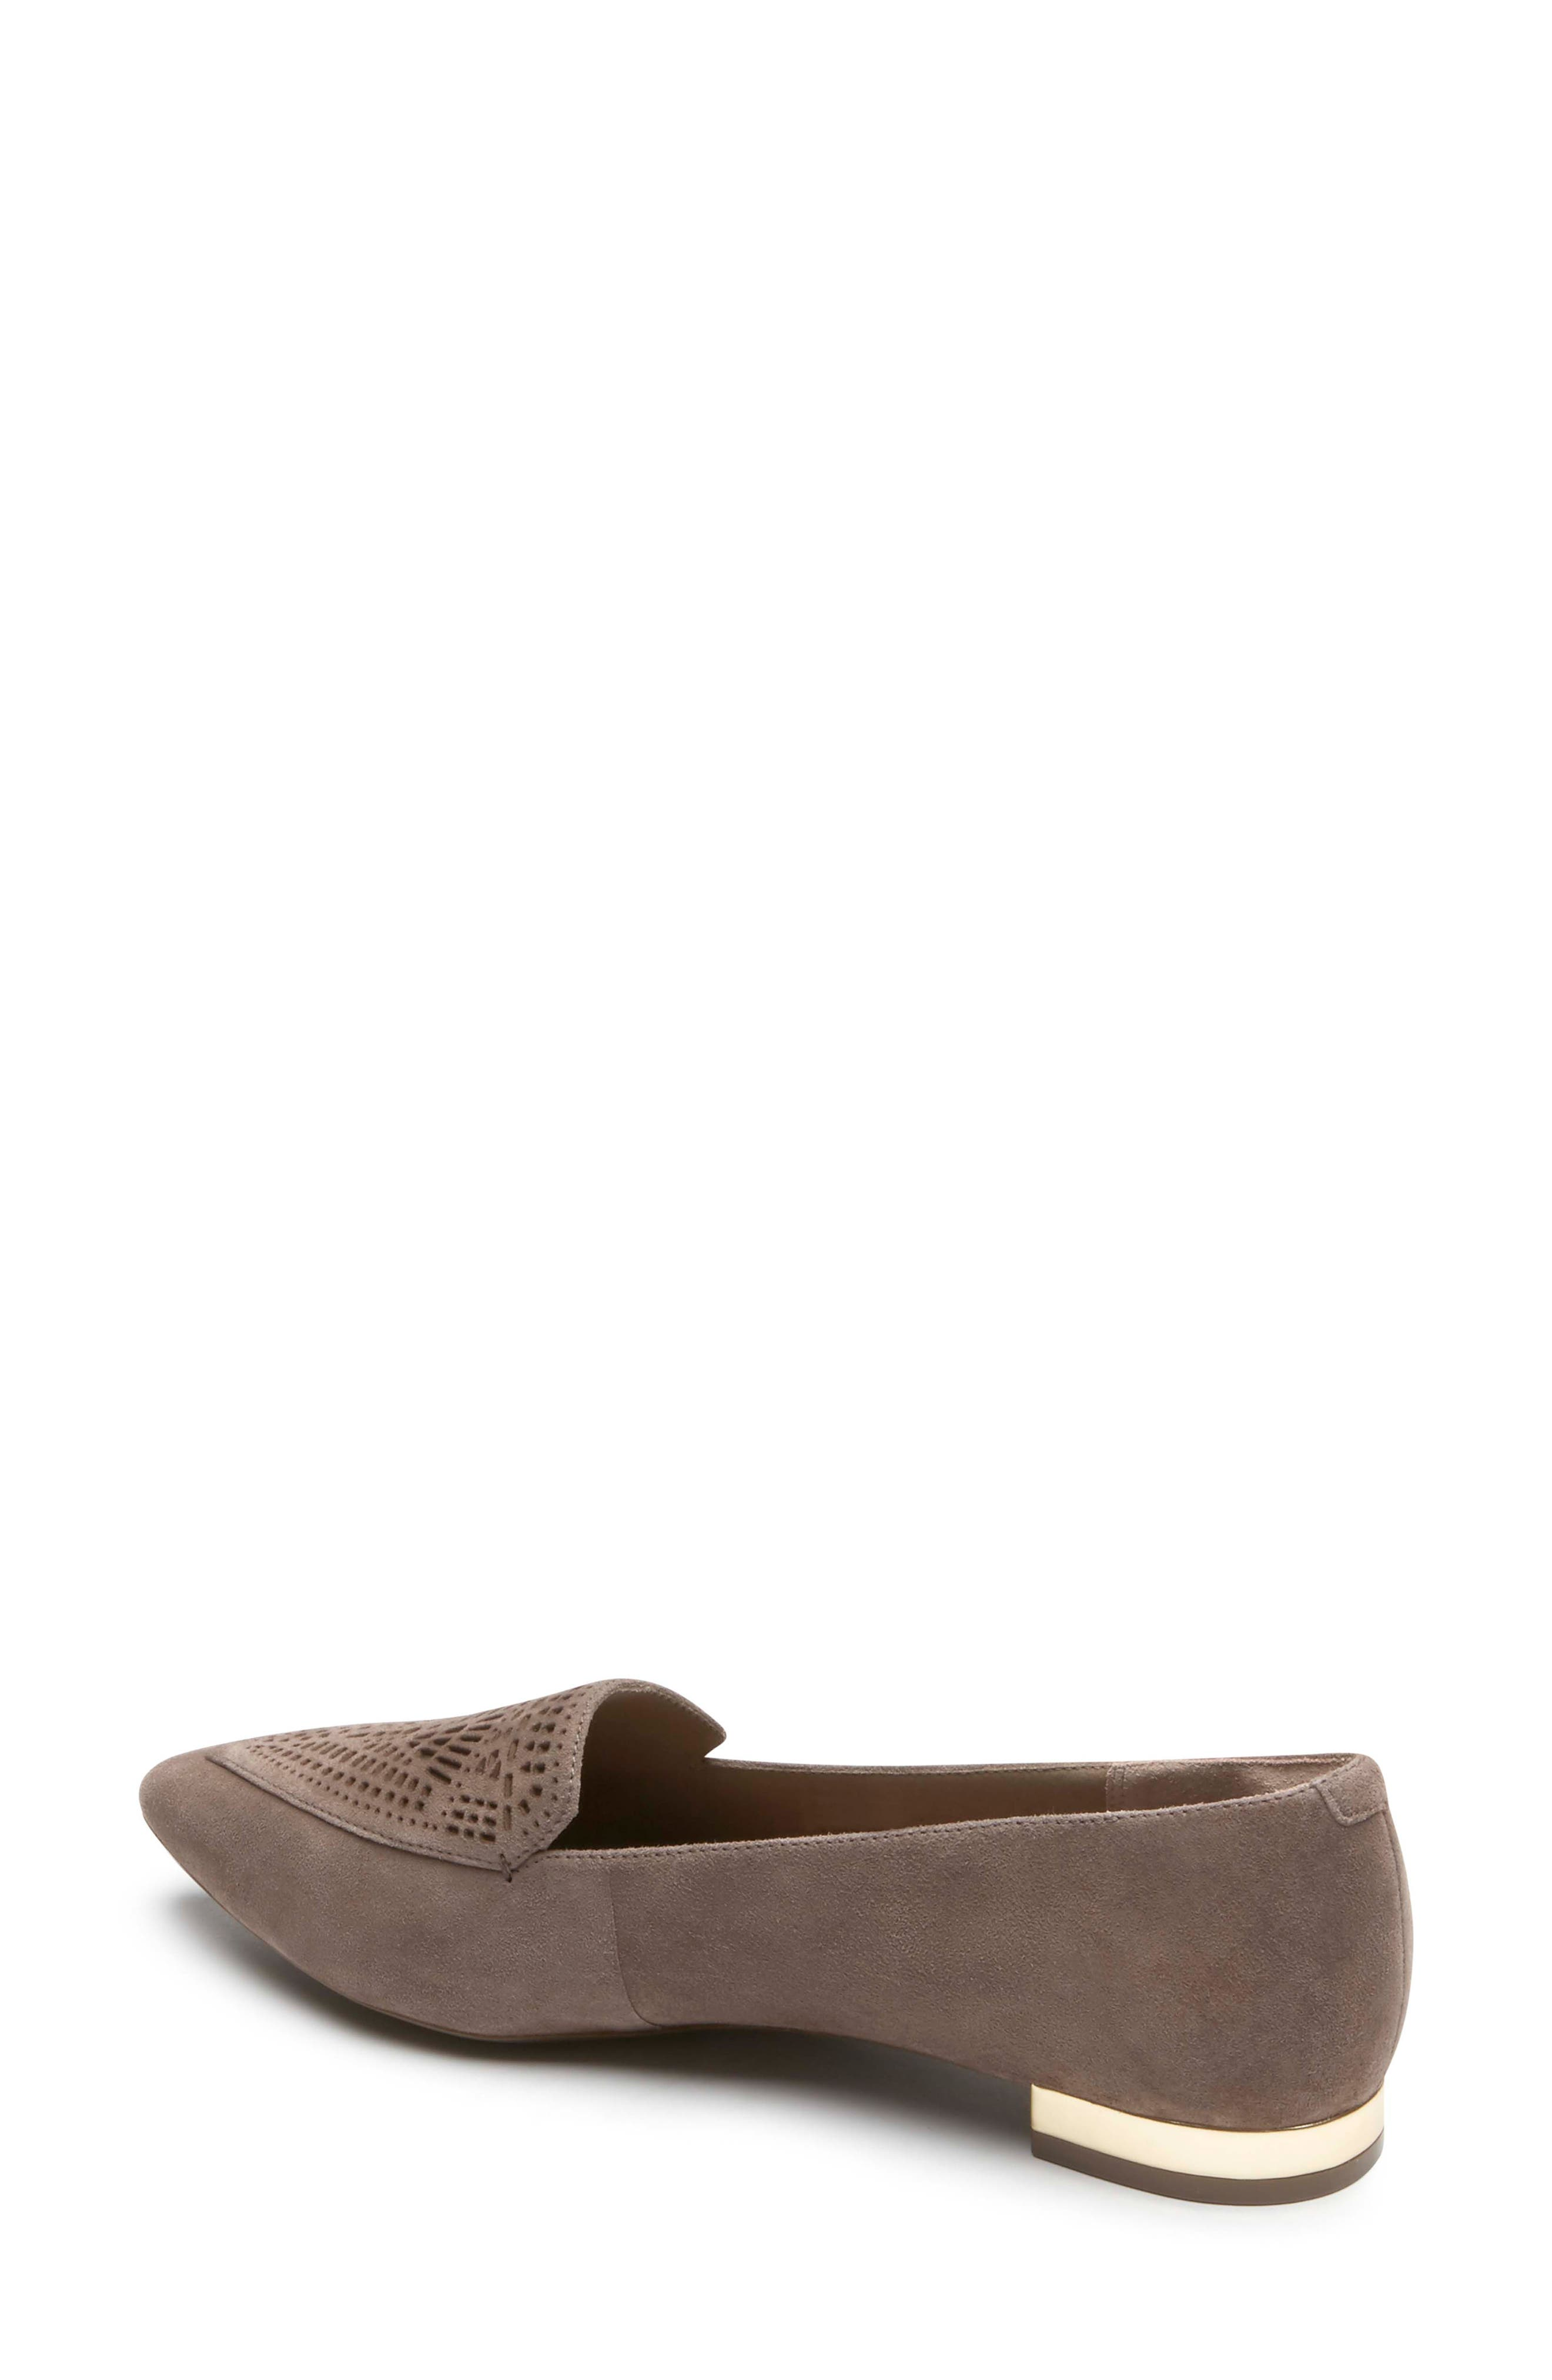 Total Motion Adelyn Loafer,                             Alternate thumbnail 2, color,                             WARM IRON